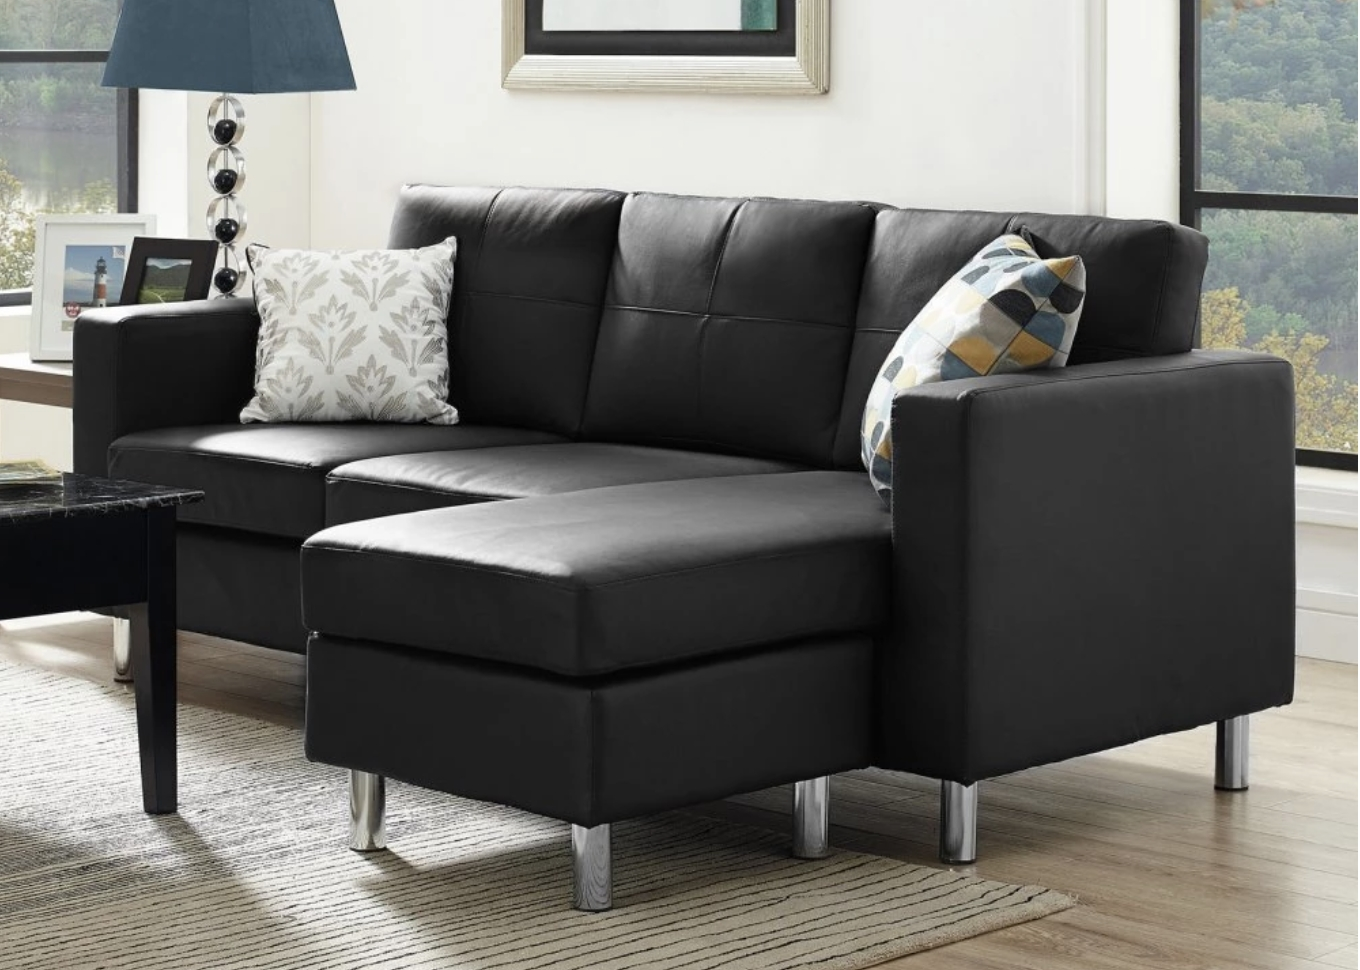 Well Known 75 Modern Sectional Sofas For Small Spaces (2018) Inside Huge Sofas (View 17 of 20)